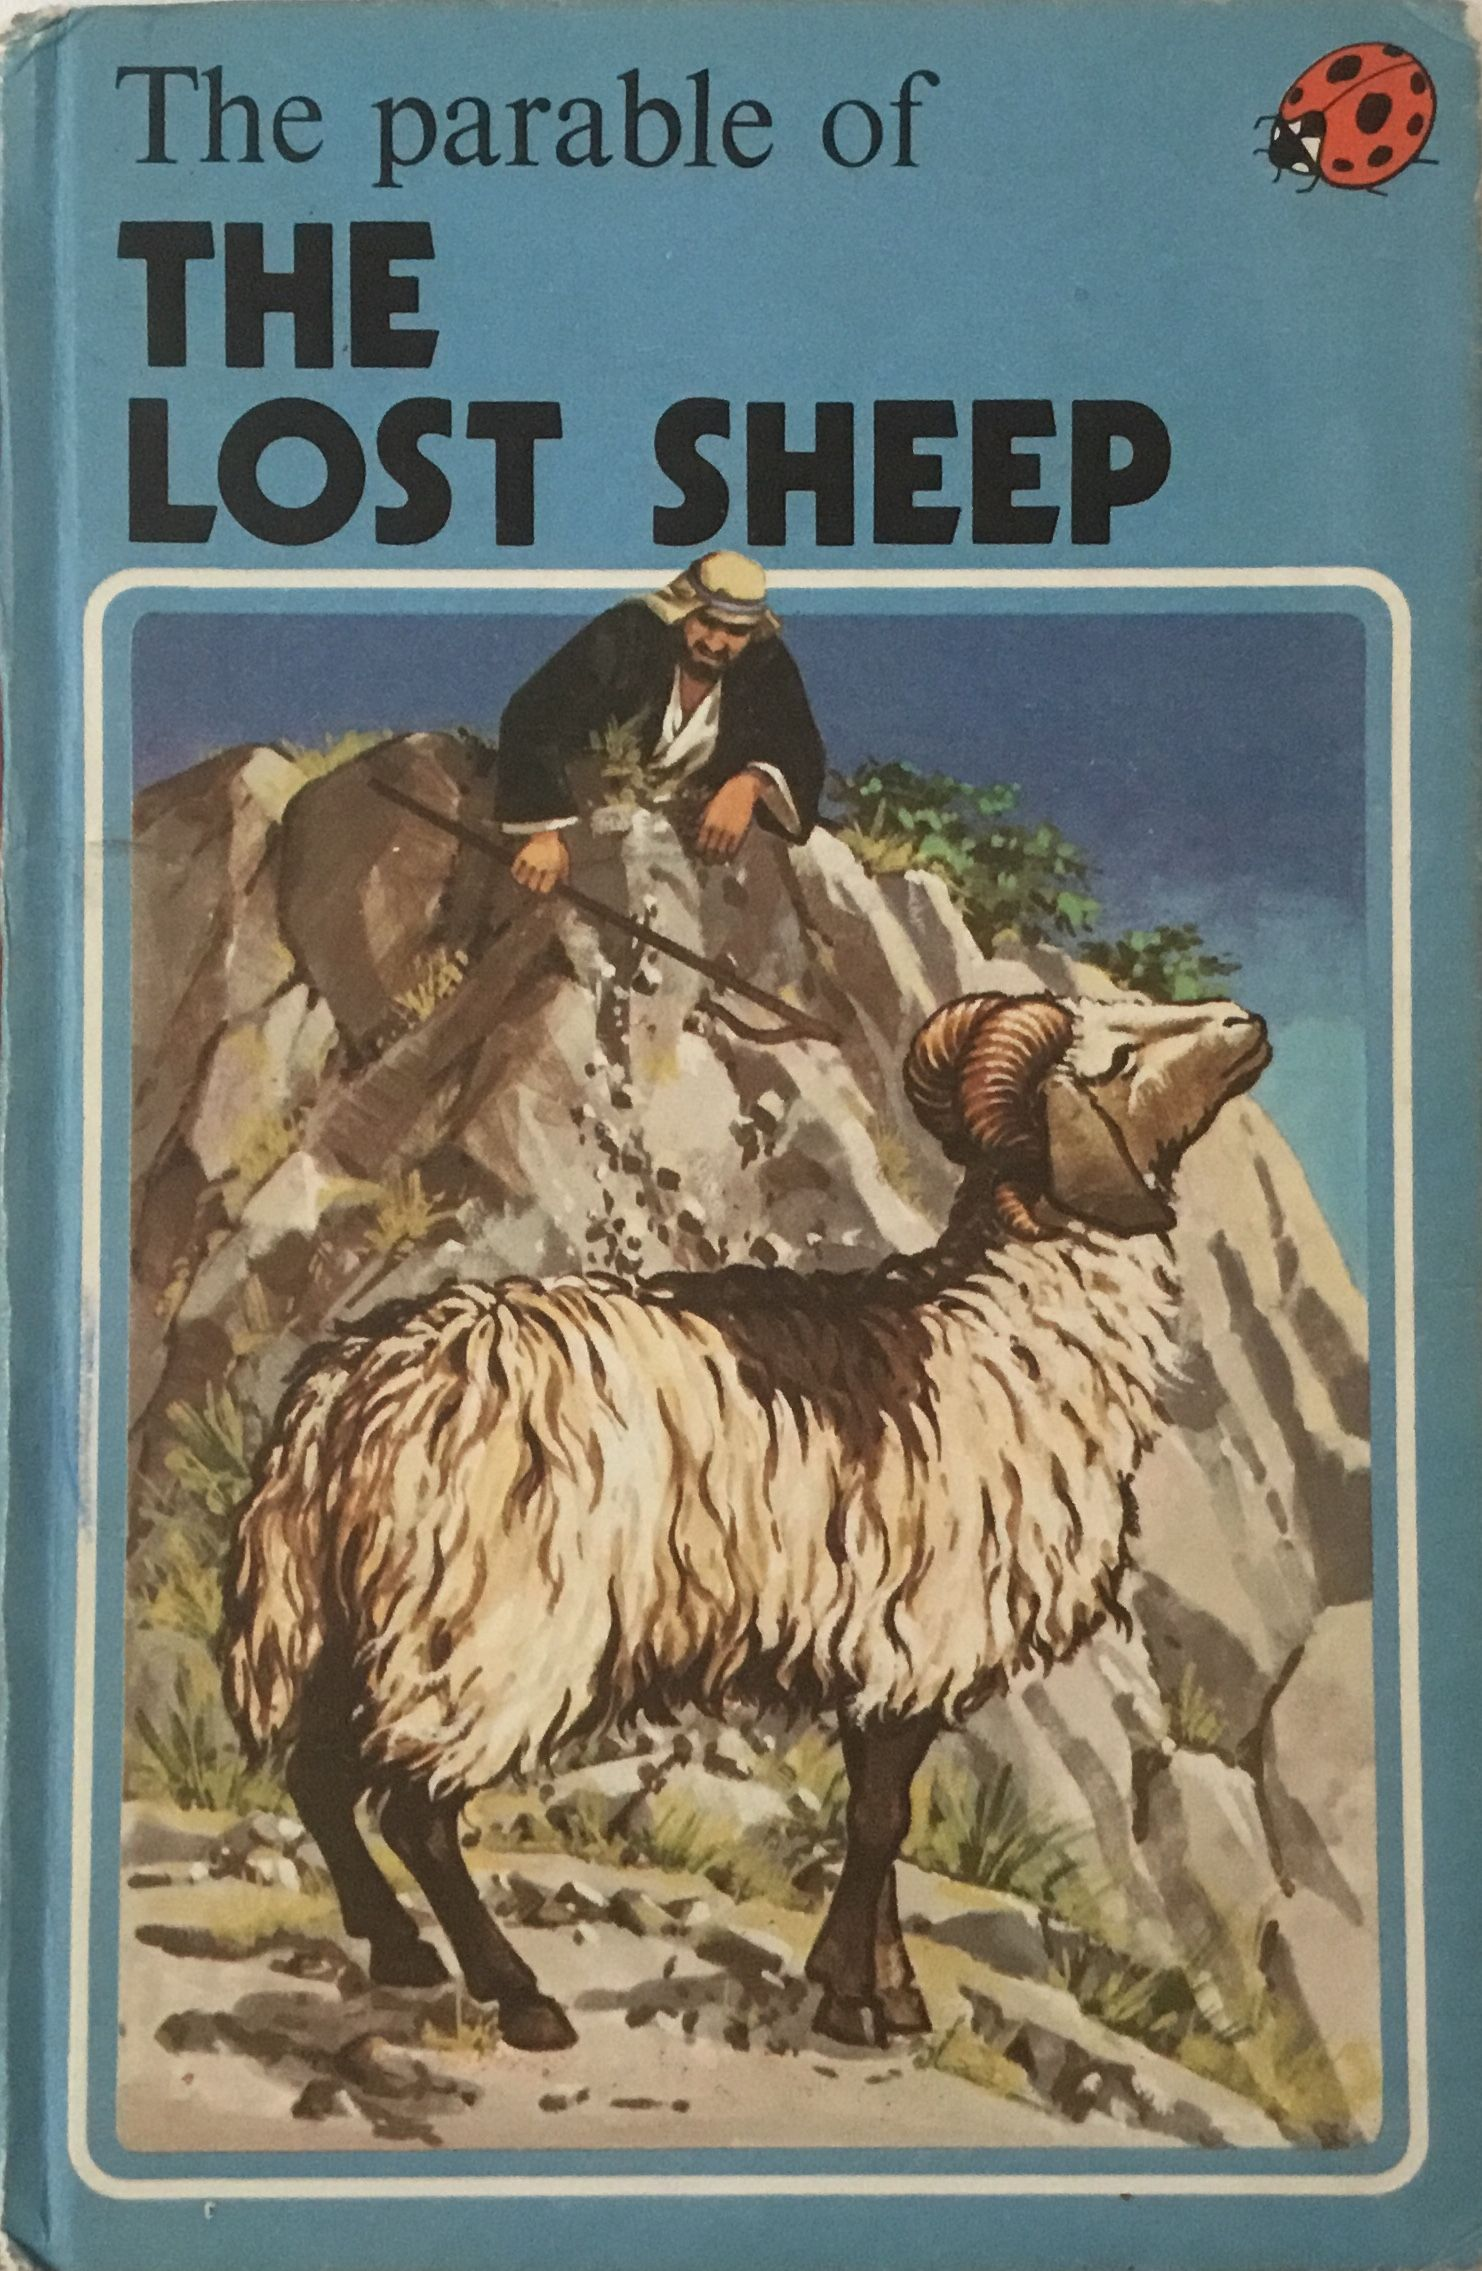 Ladybird Book, Bible Stories, The Parable of The Lost